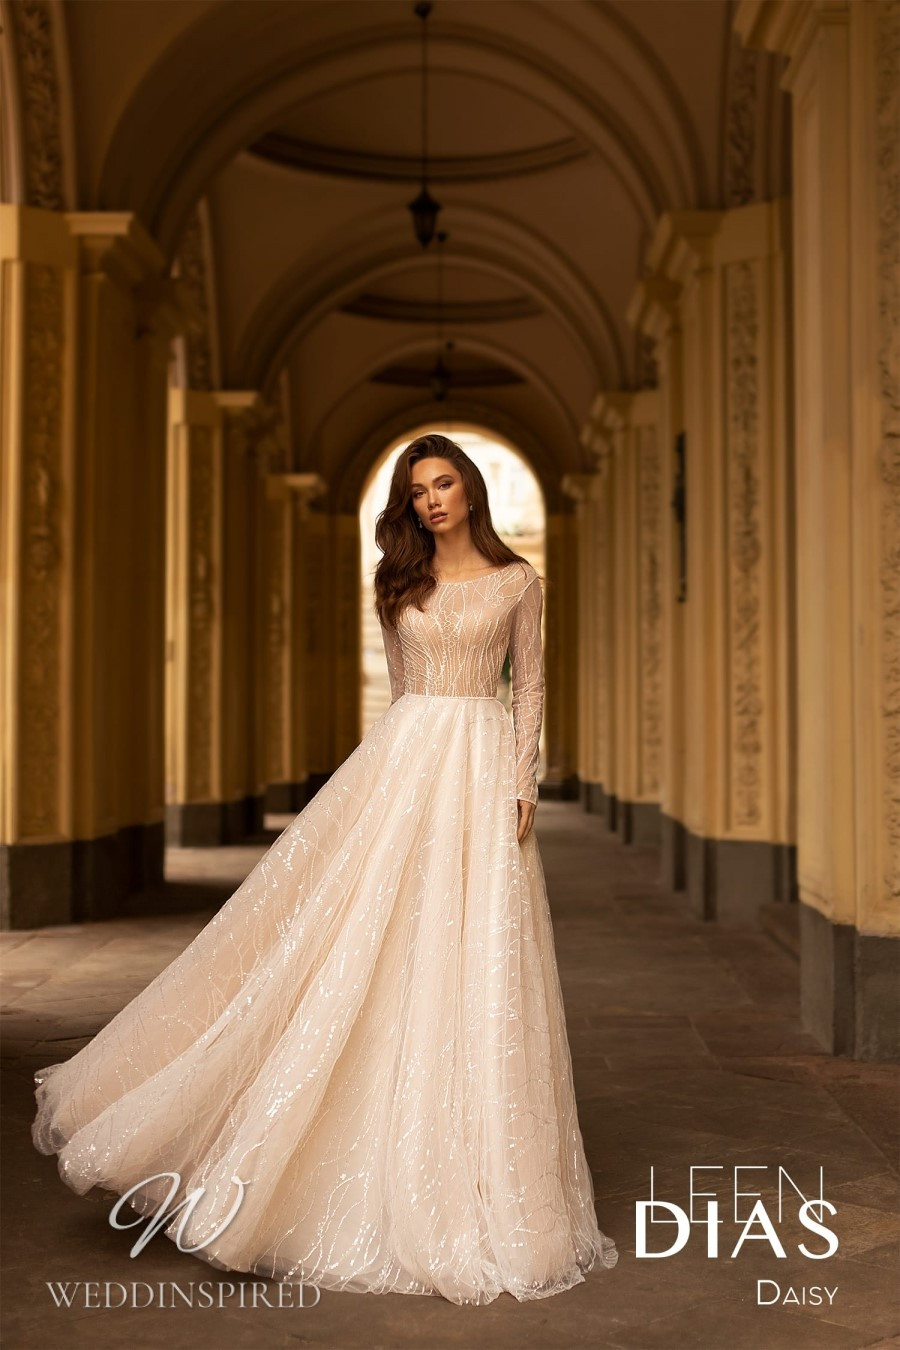 A Leen Dias 2021 modest tulle A-line wedding dress with long sleeves